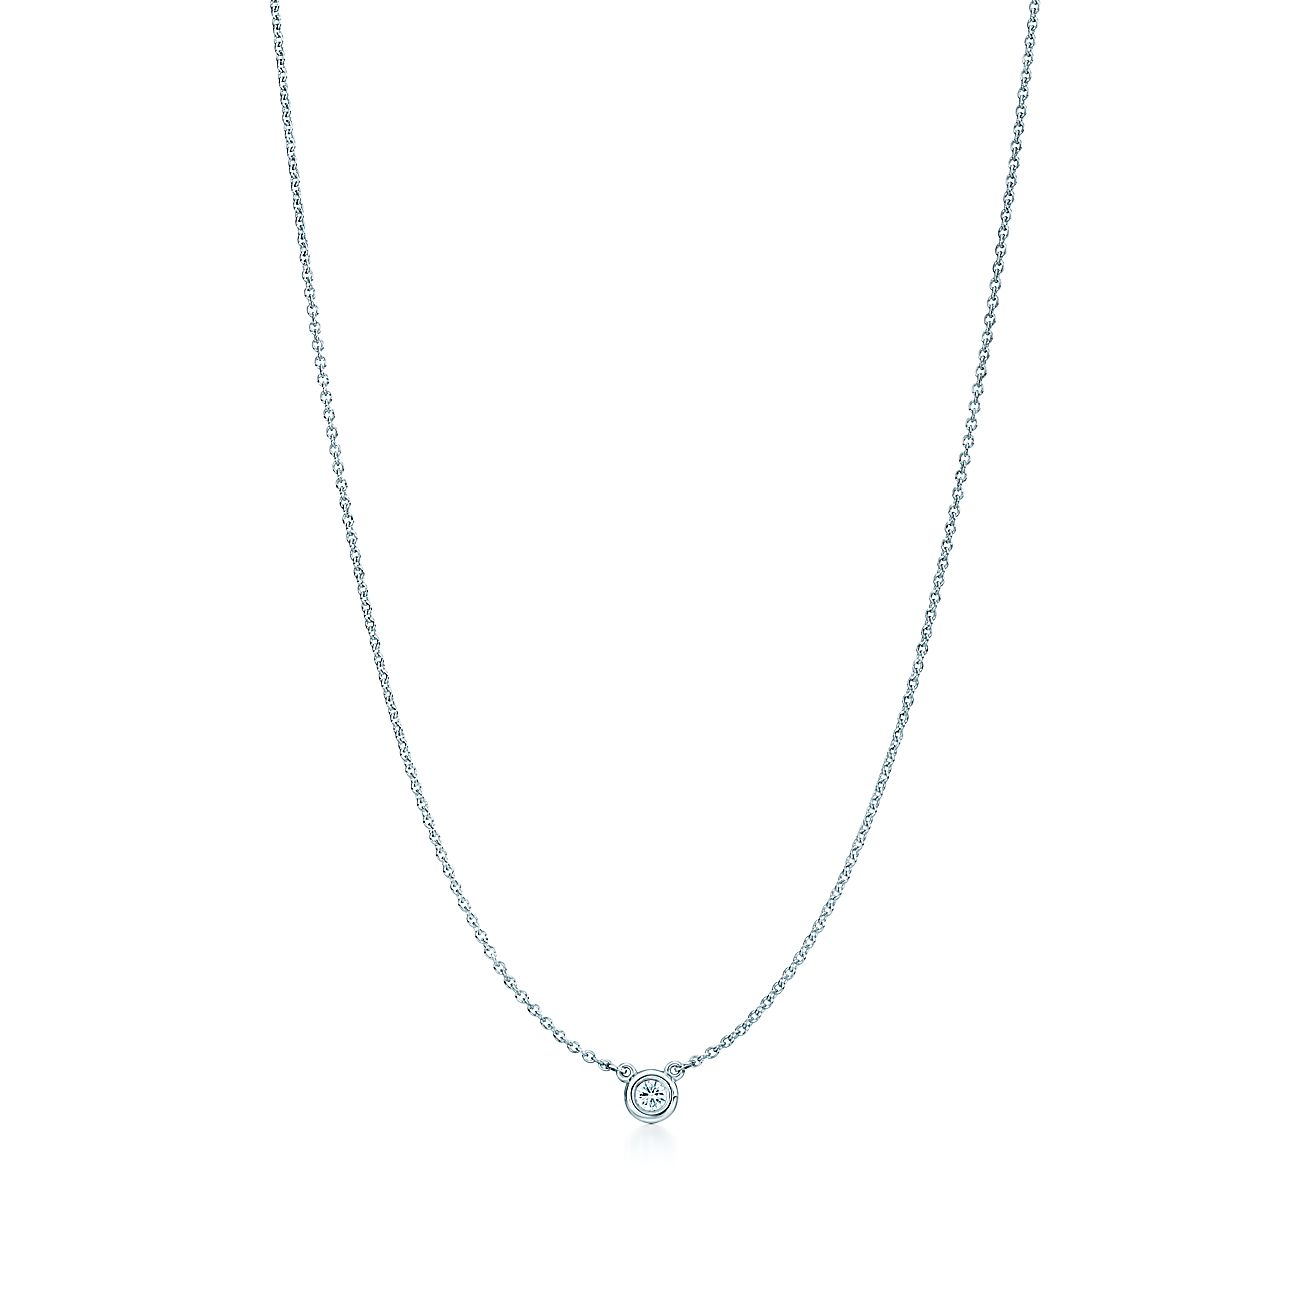 necklace in white solitaire chain diamond carat floating pendant gold a round